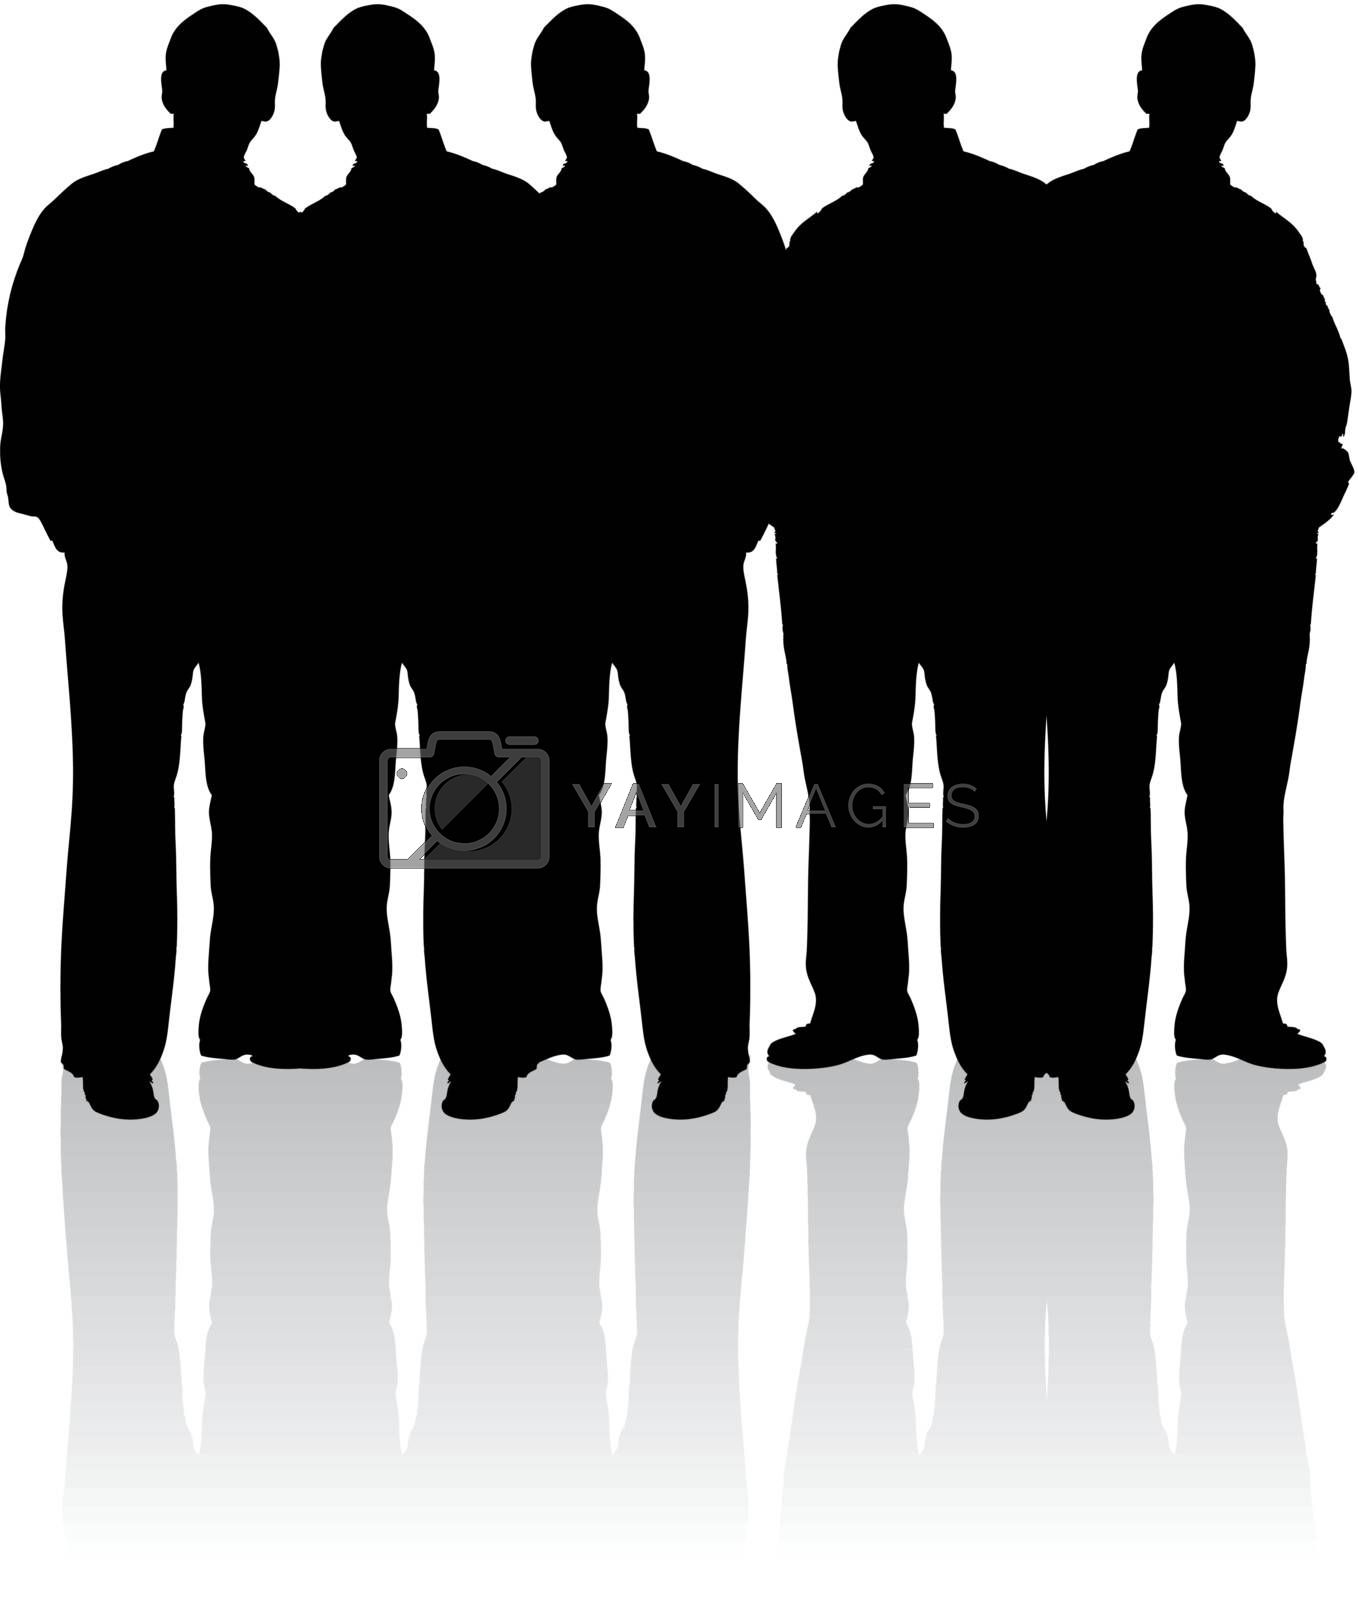 Silhouettes of young people on white background